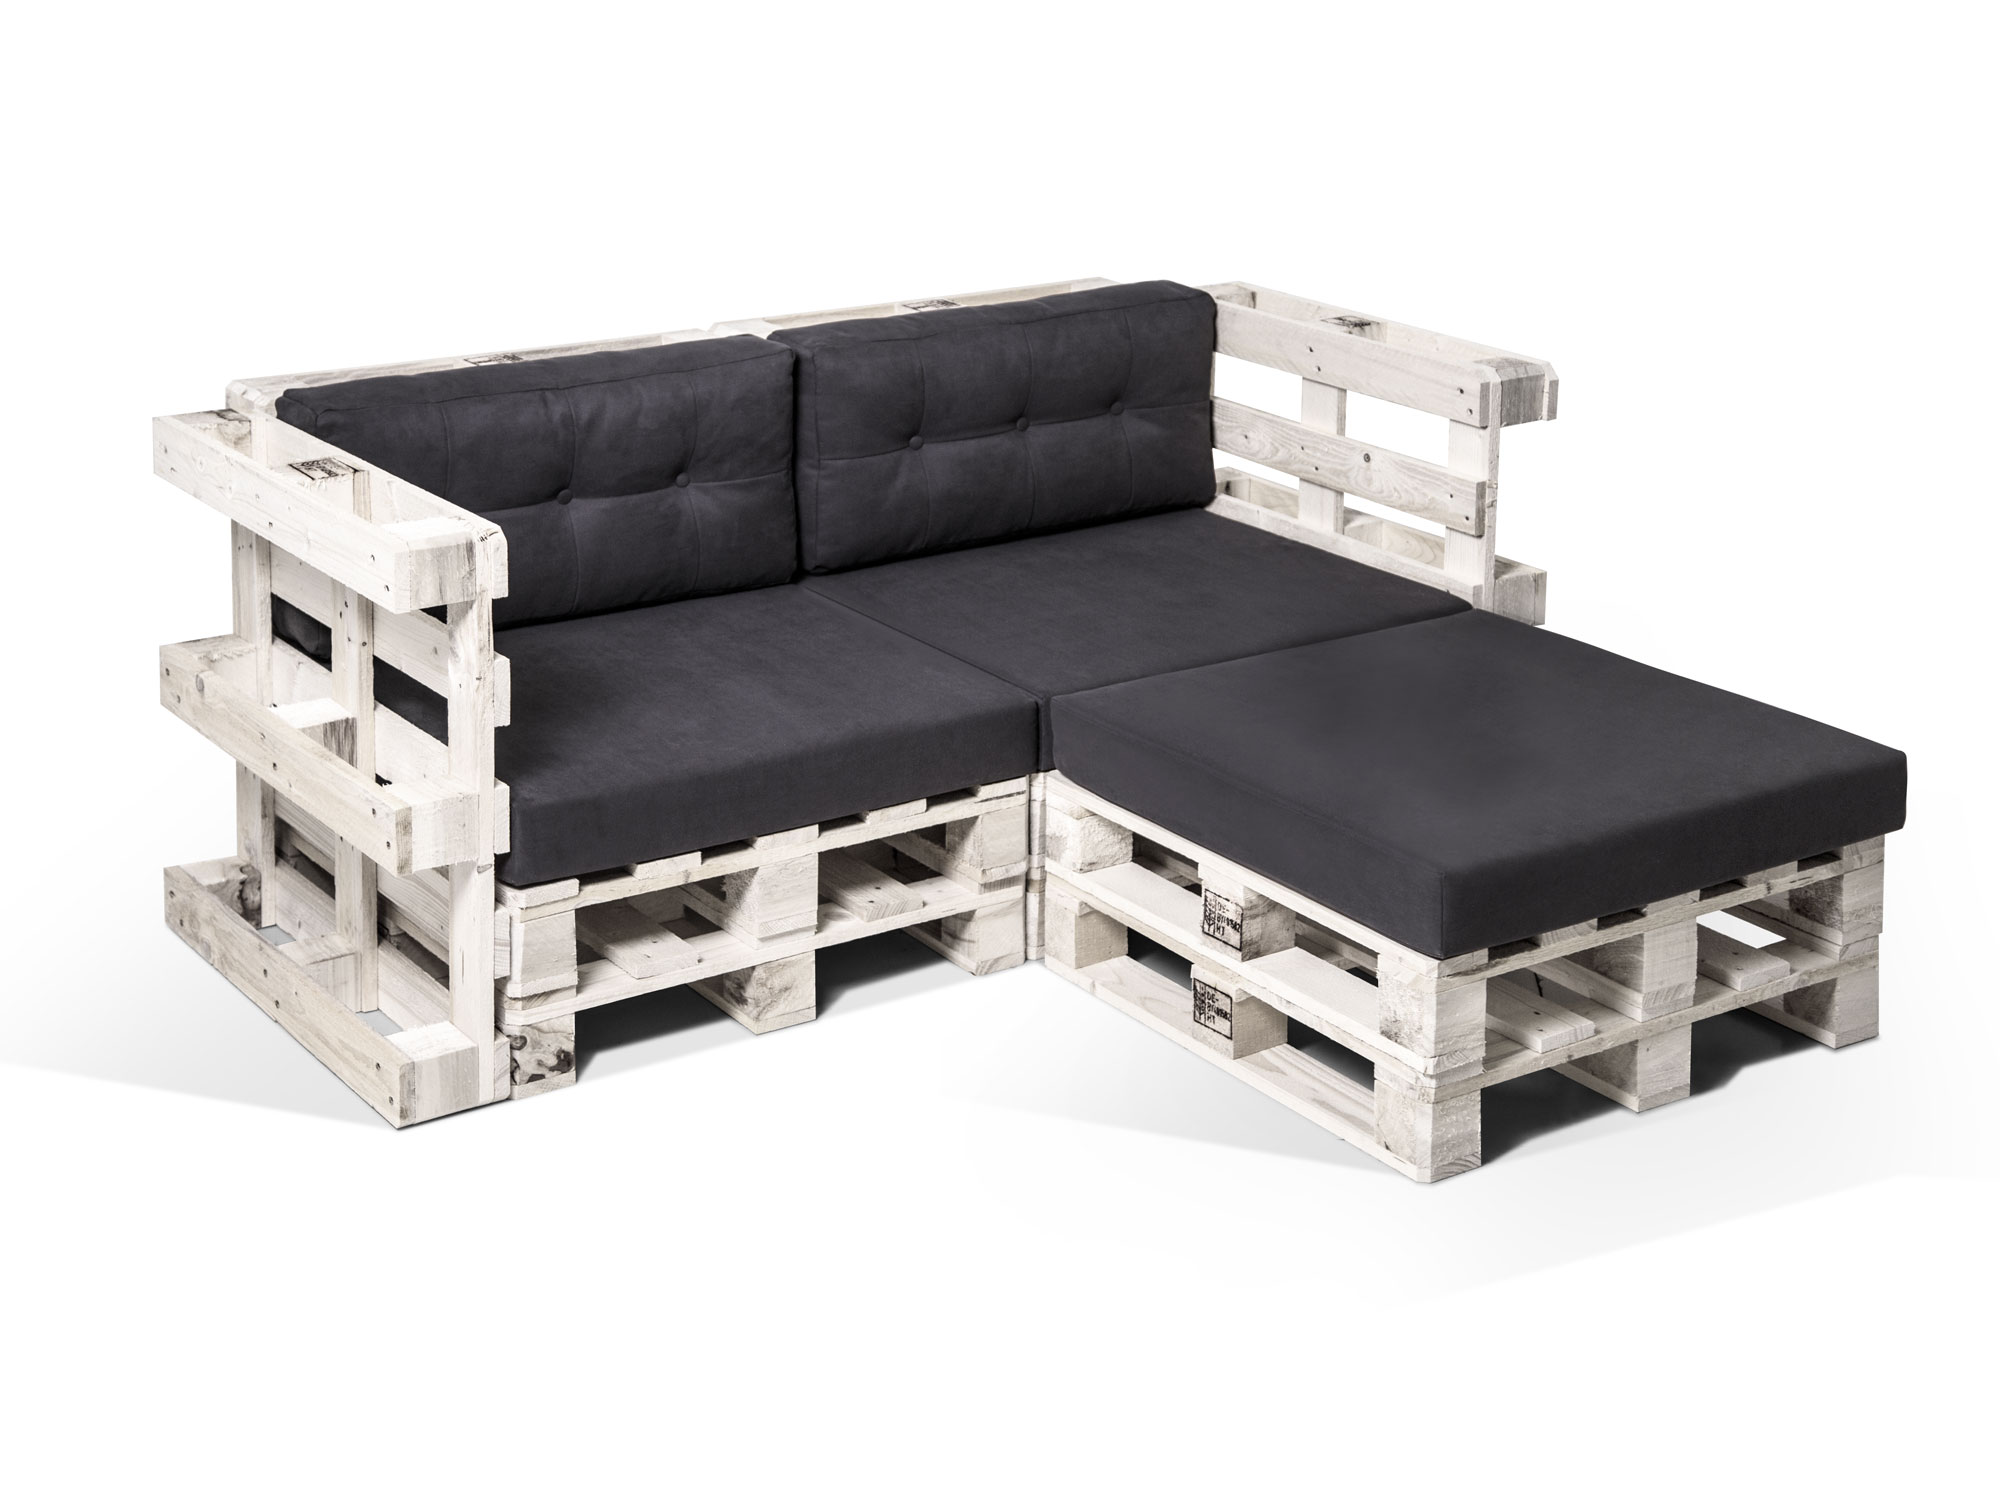 paletti ecksofa 2 sitzer aus paletten wei lackiert. Black Bedroom Furniture Sets. Home Design Ideas